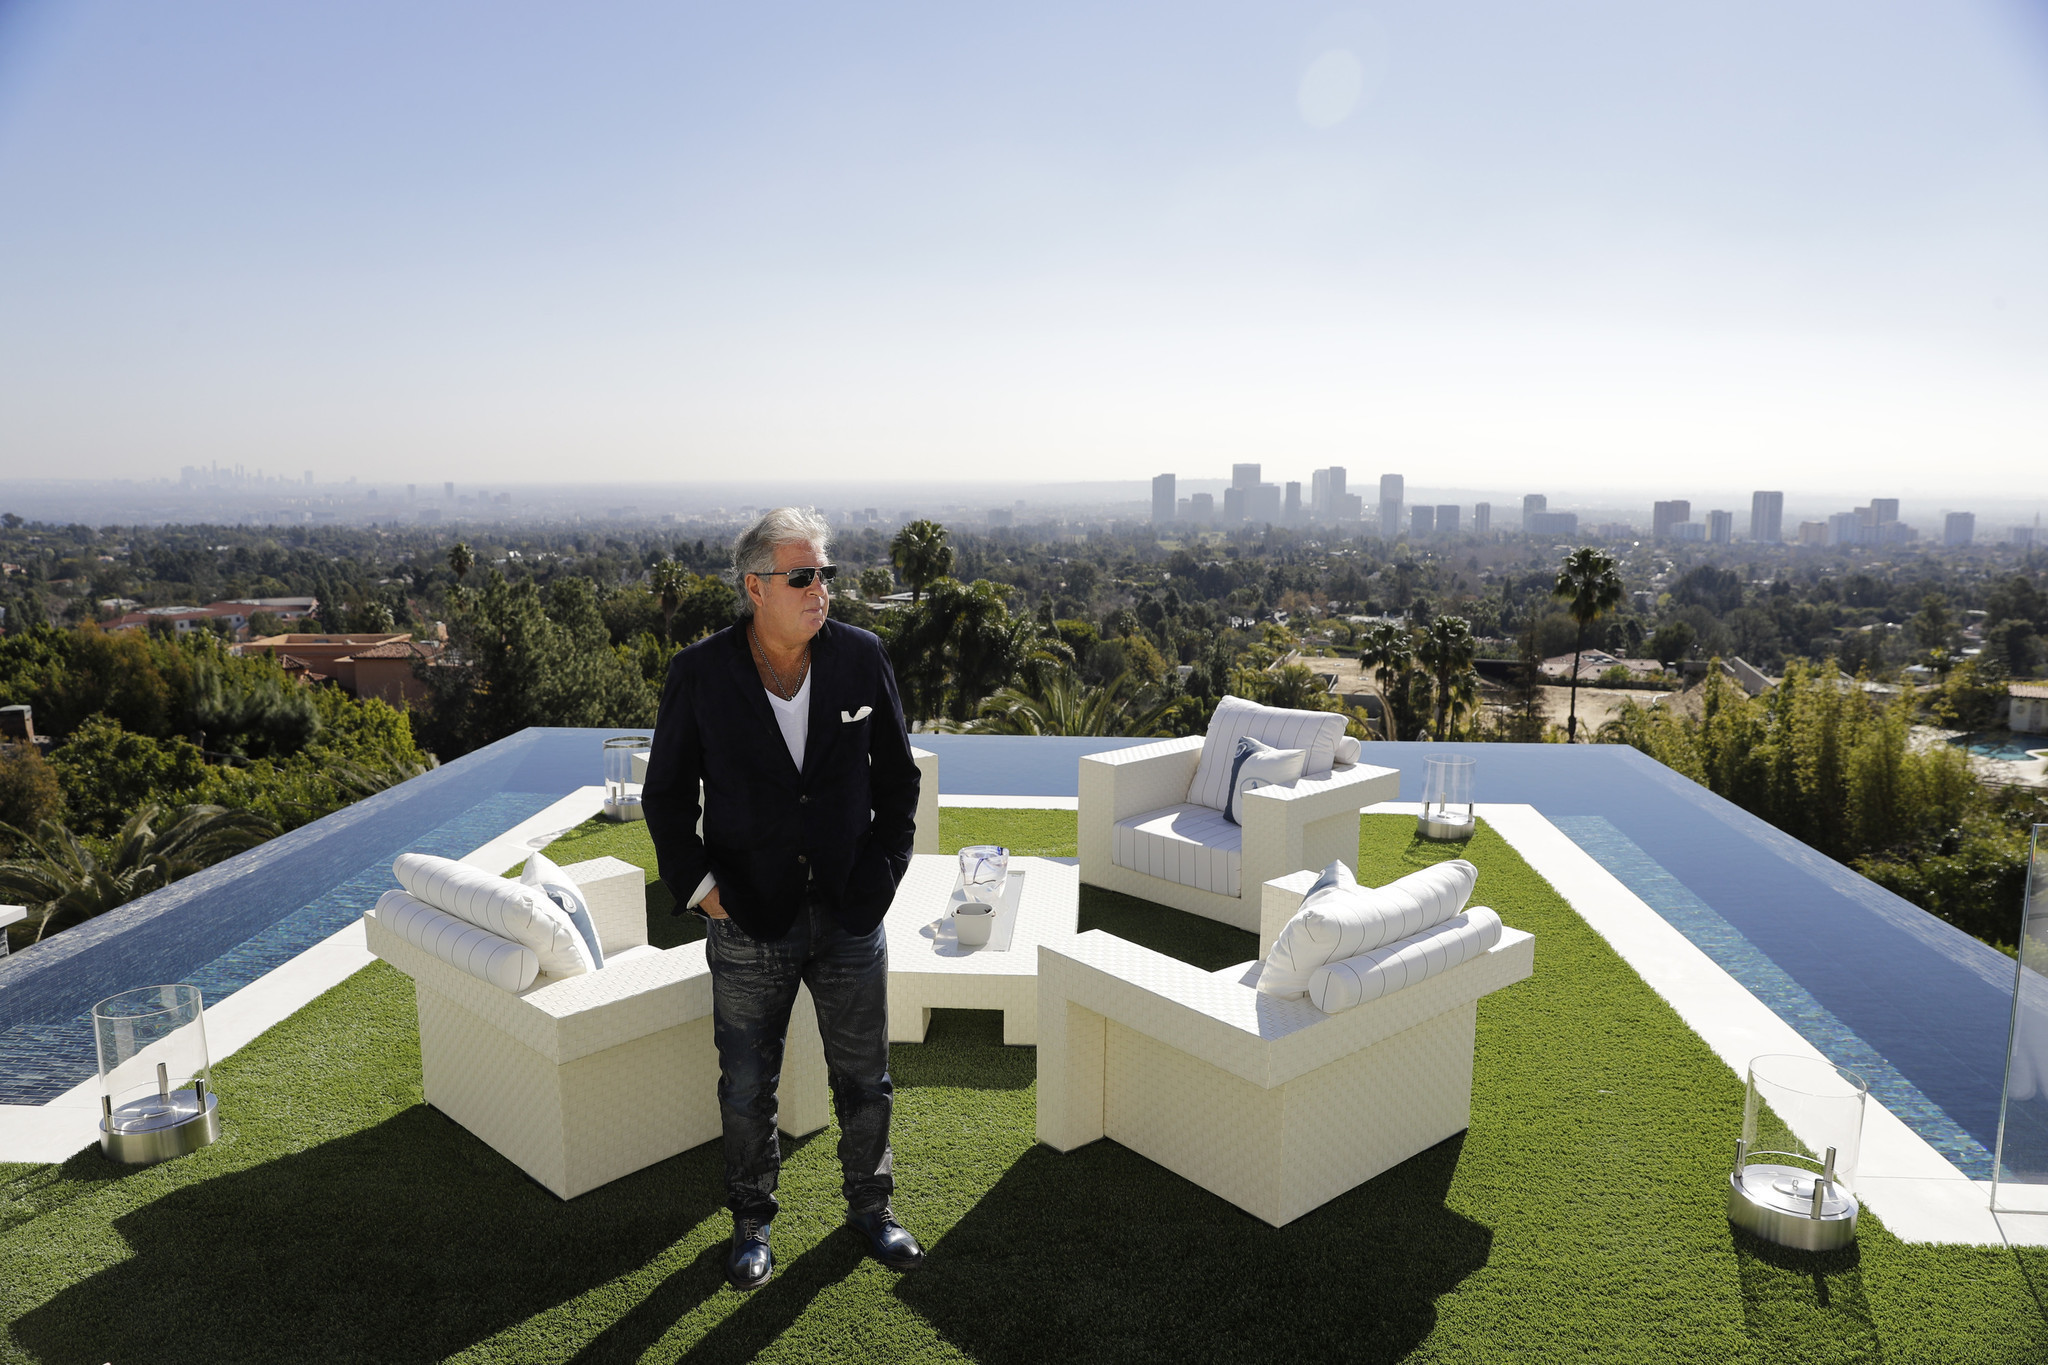 250M Los Angeles Mega Mansion Is Most Expensive US Listing